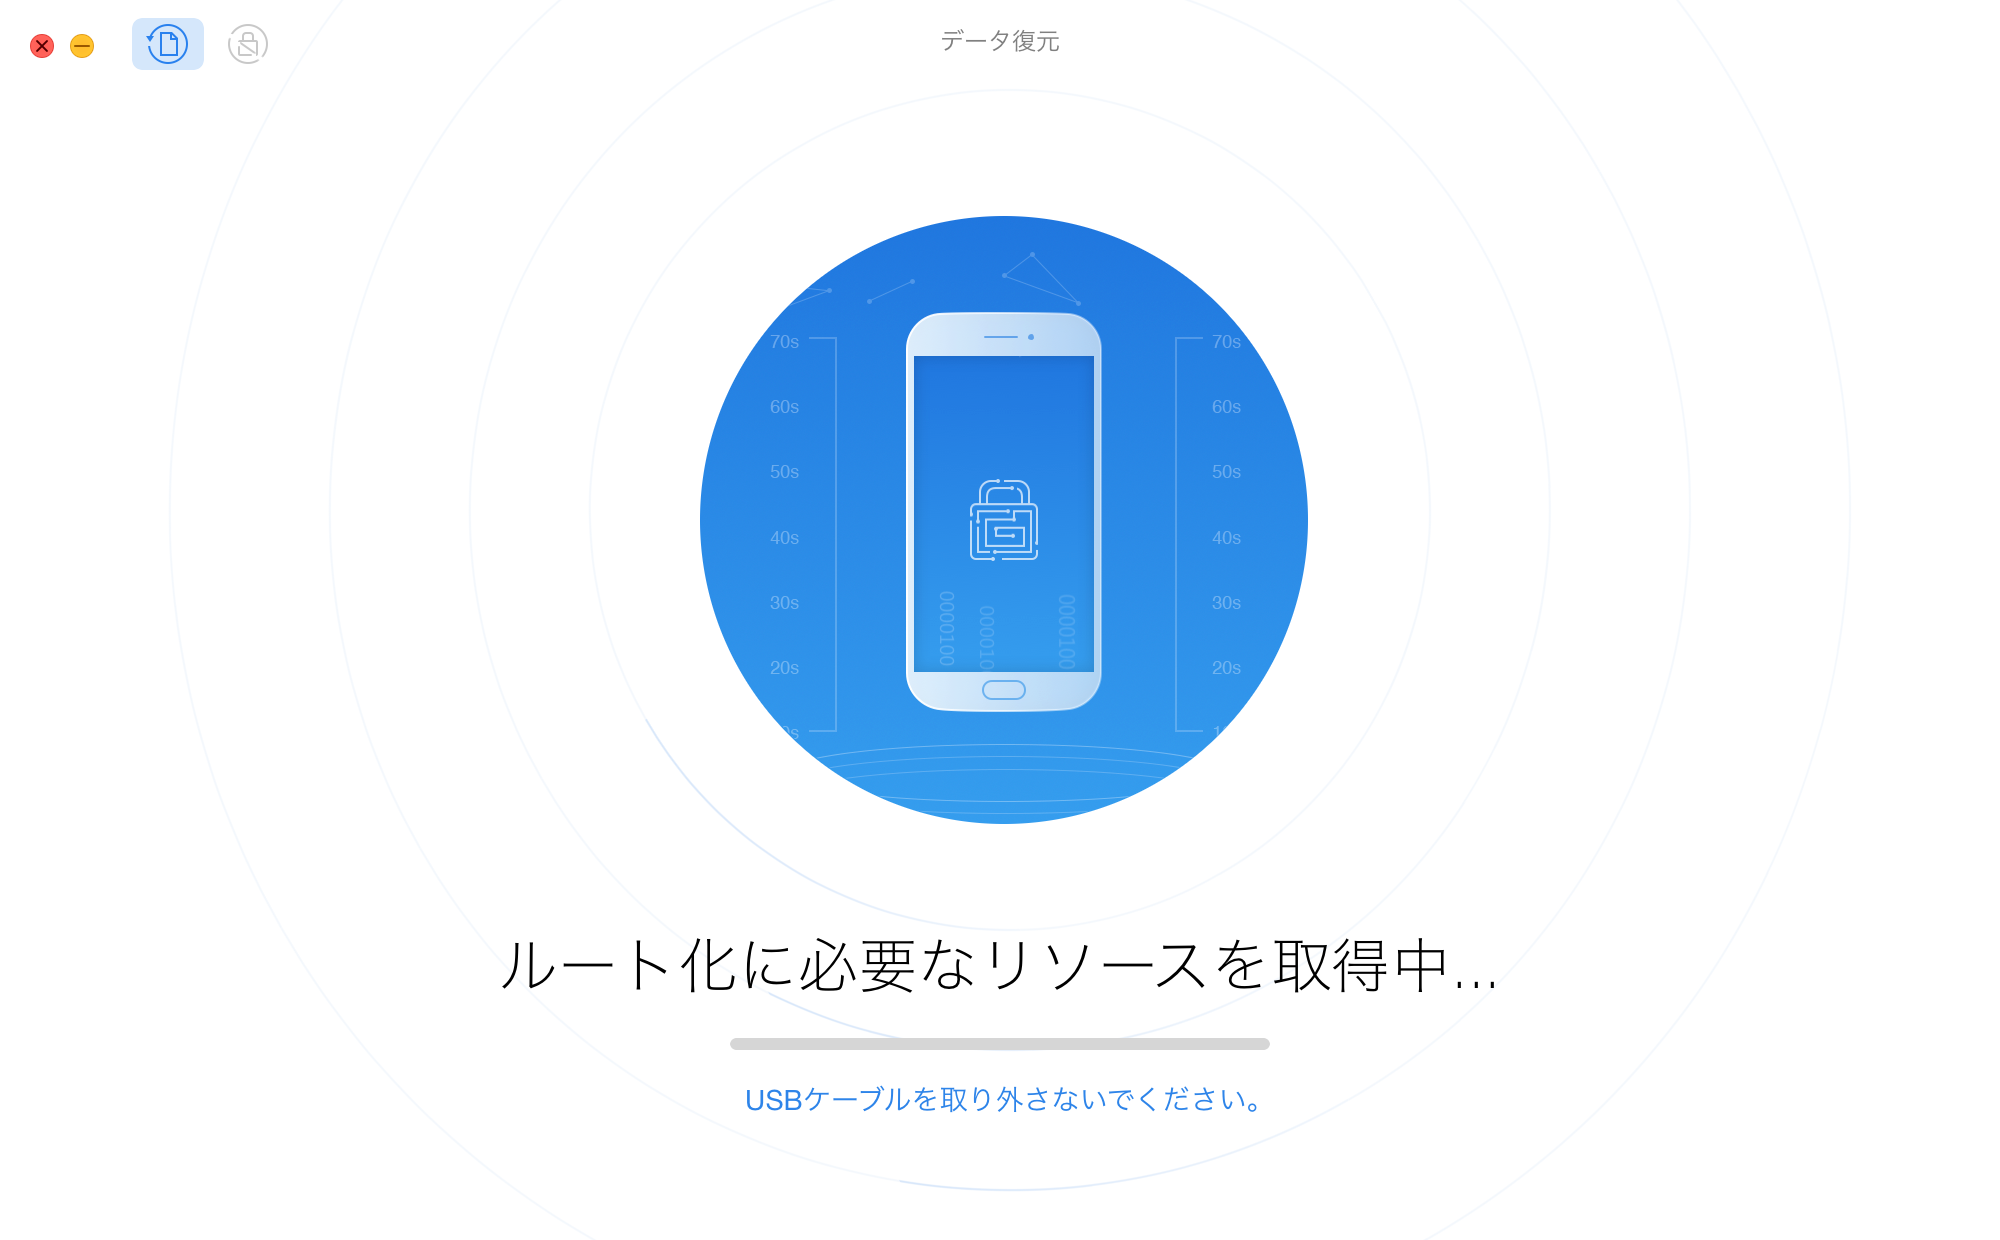 HUAWEI DeviceをRoot化中